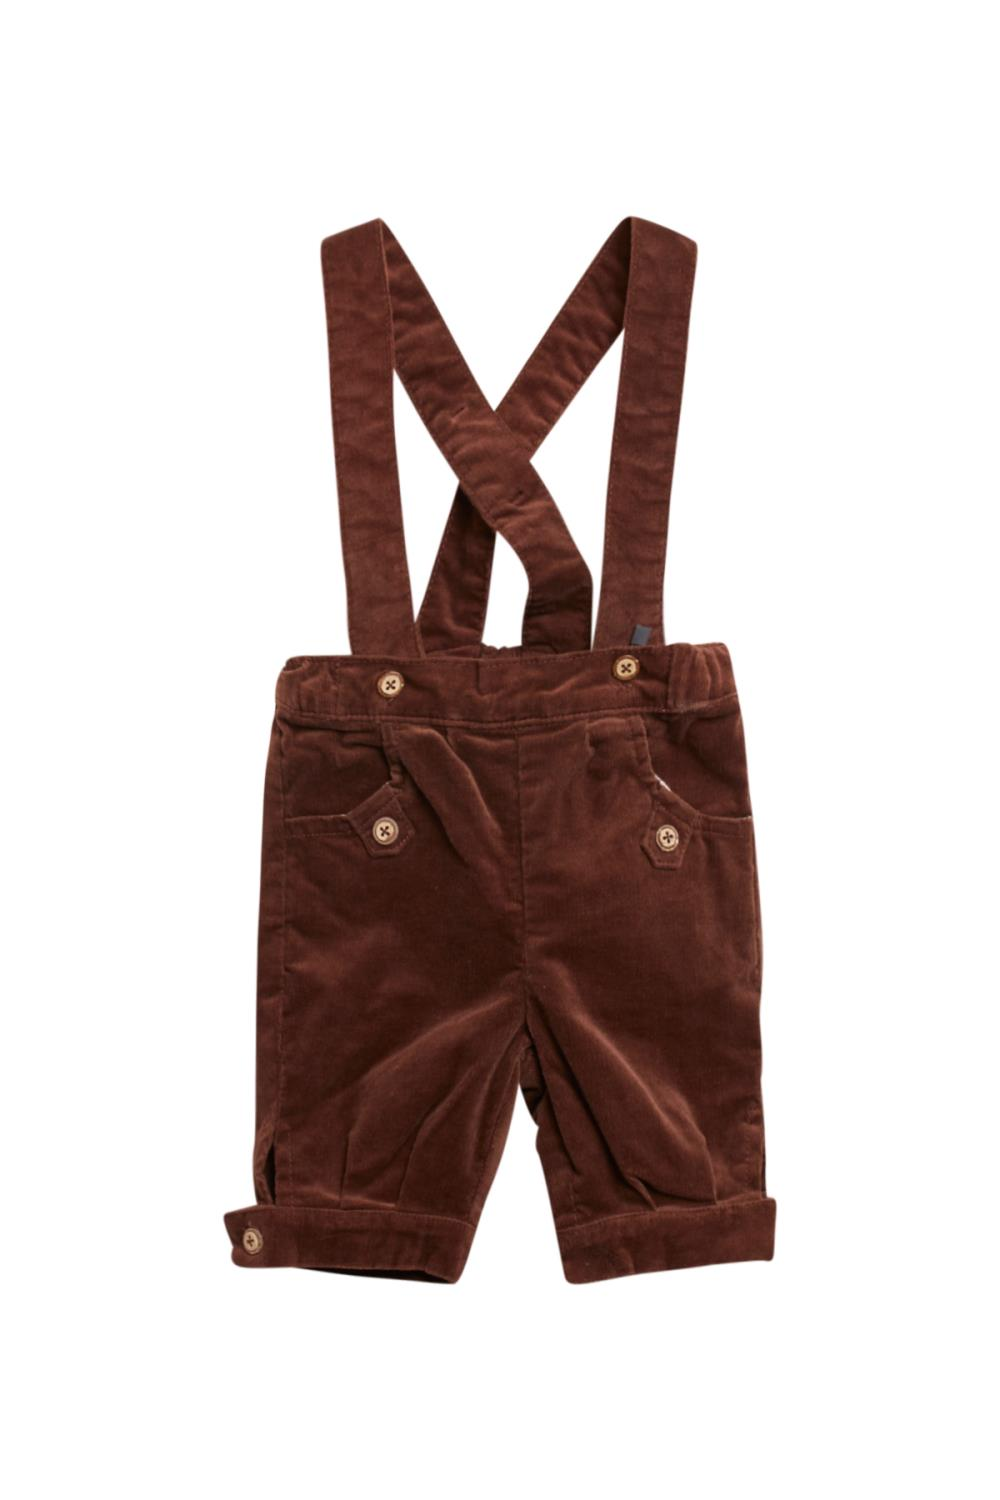 Hust and Claire - Shorts Hanibal, chestnut